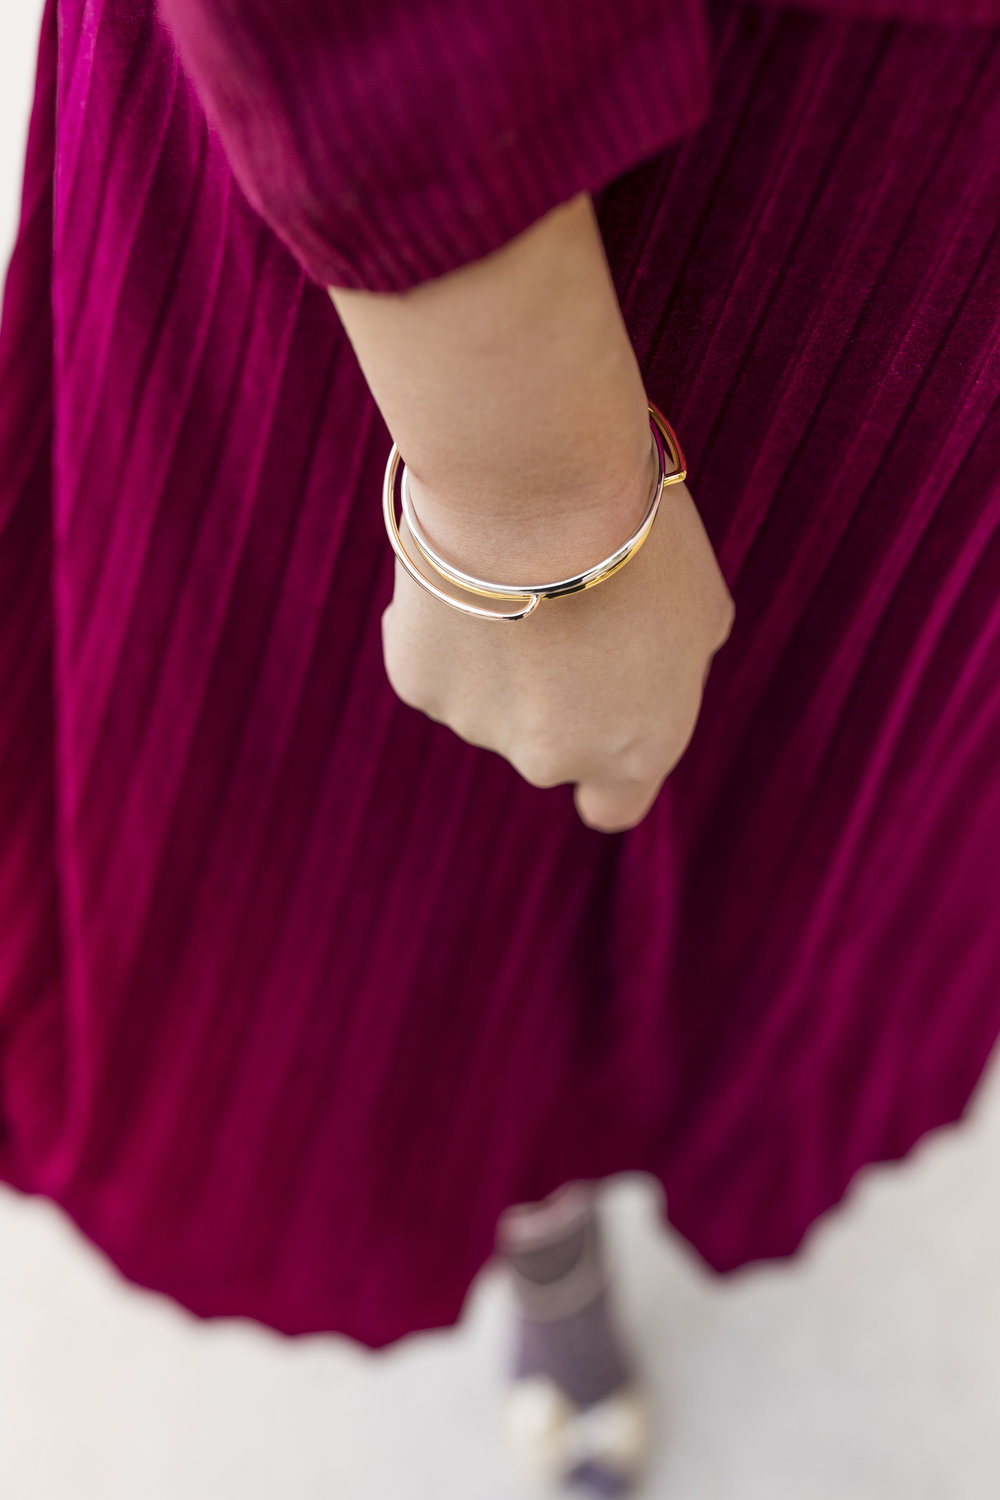 GLOD's bracelet features three tones in one. Use  TRICIA15  for 15% off your order.